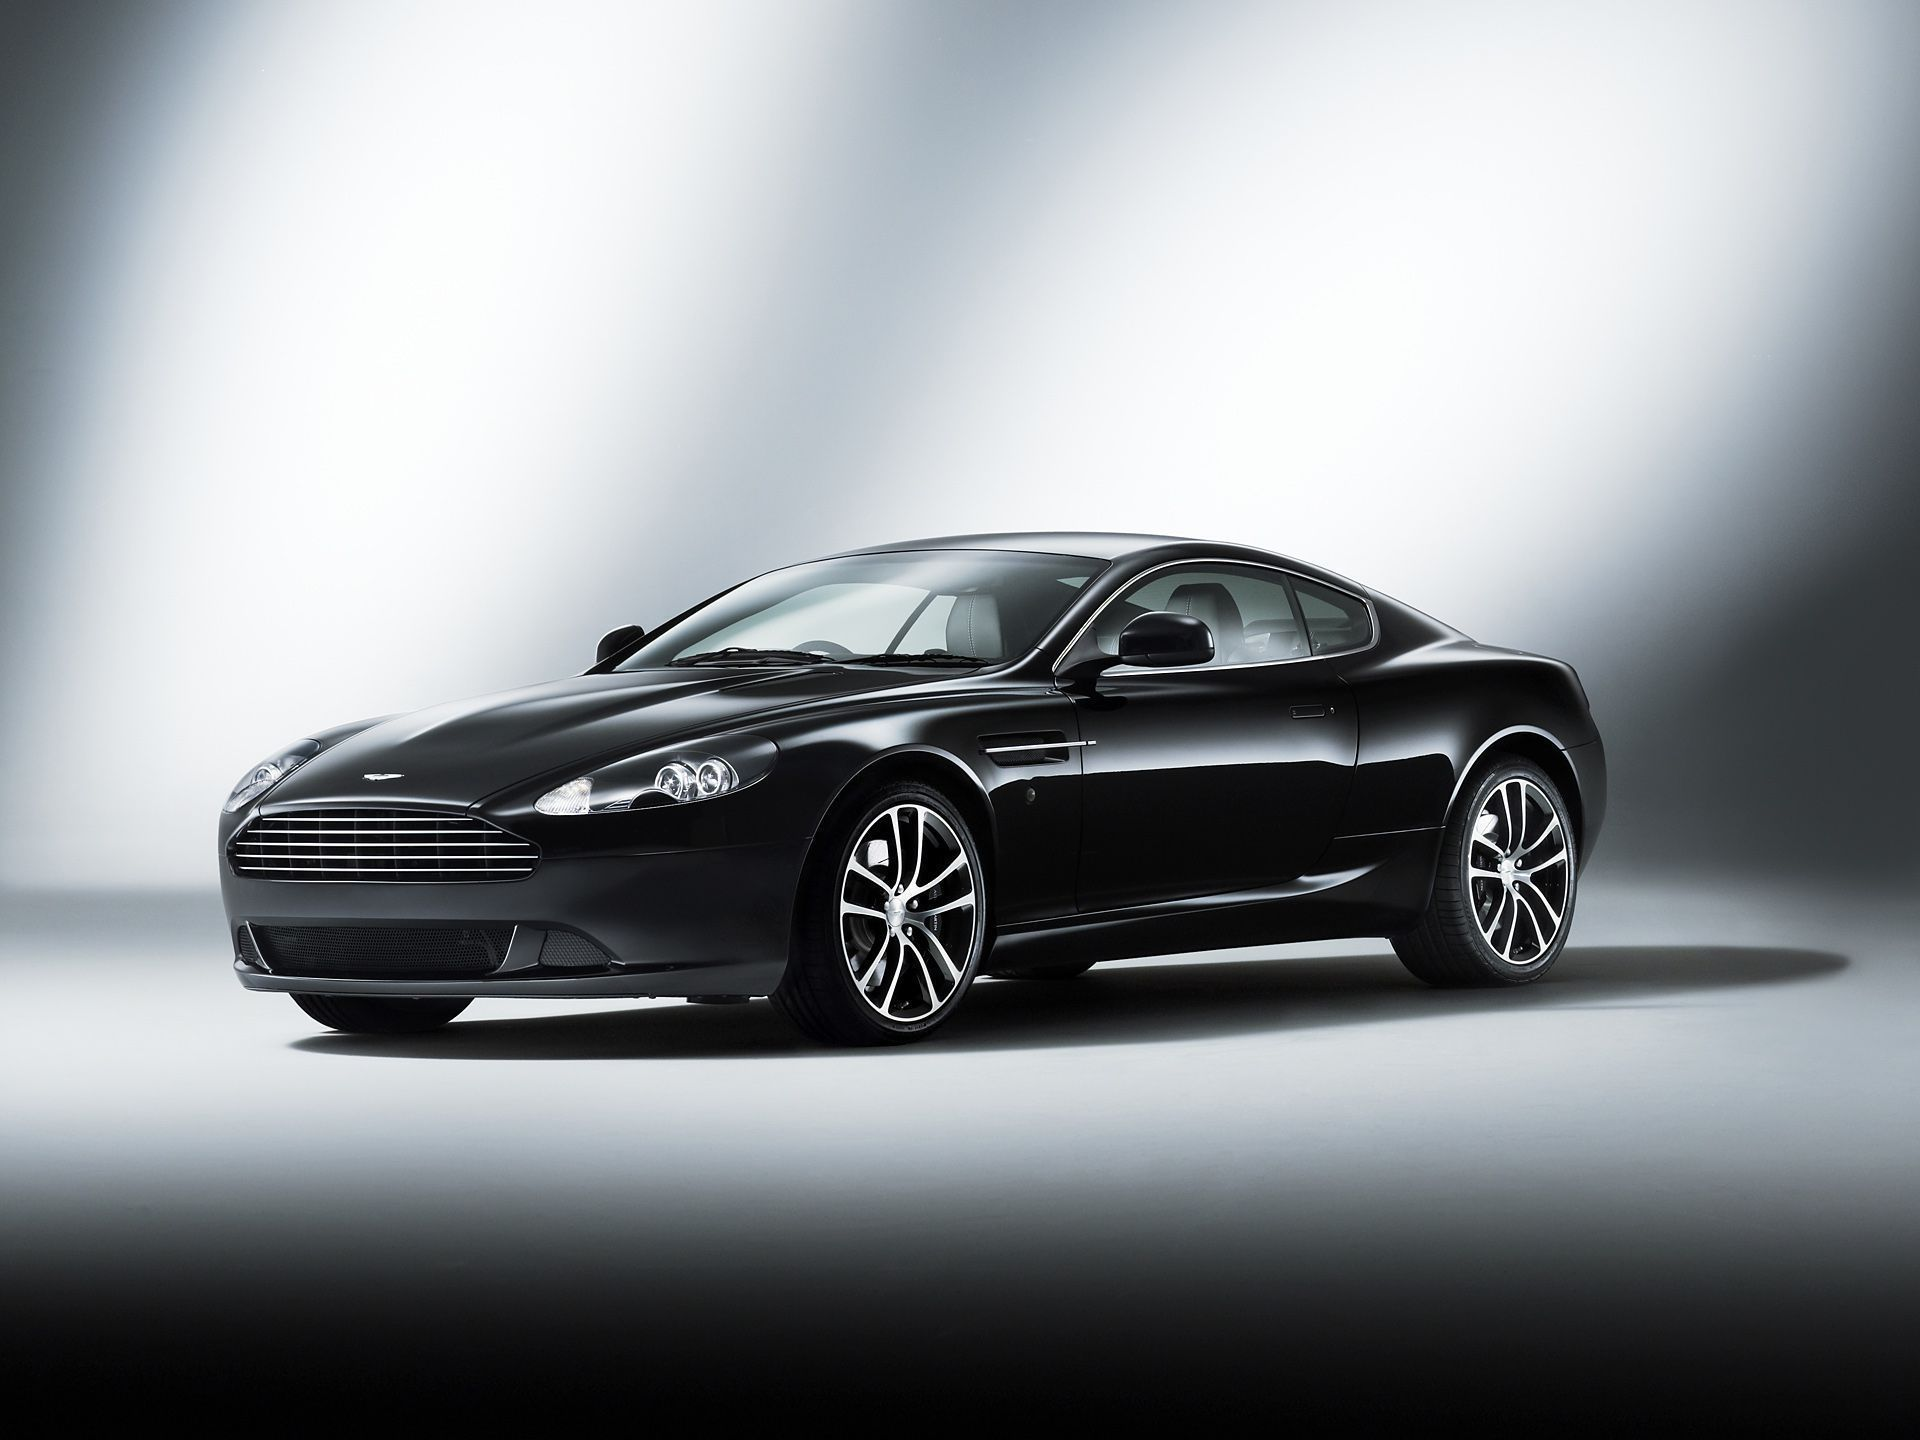 Aston Martin Db9 Wallpaper For Computer